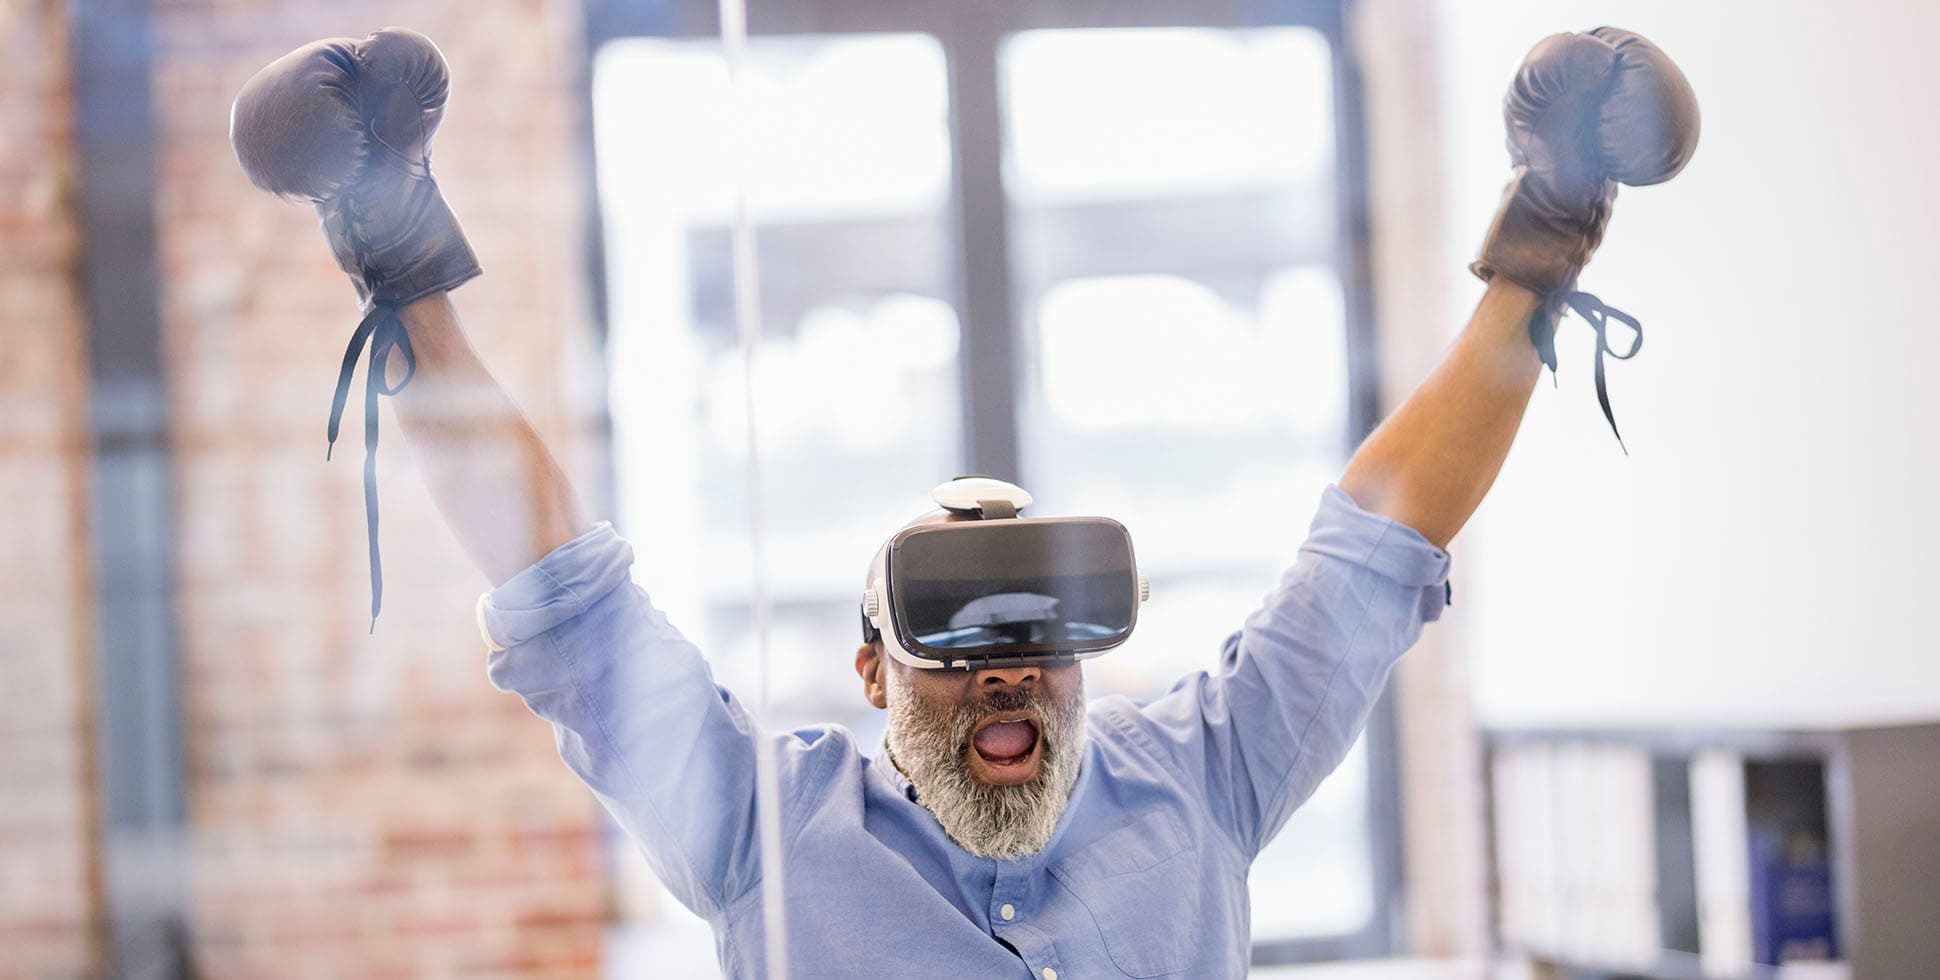 xR, AR, VR, MR: What's the Difference in Reality?